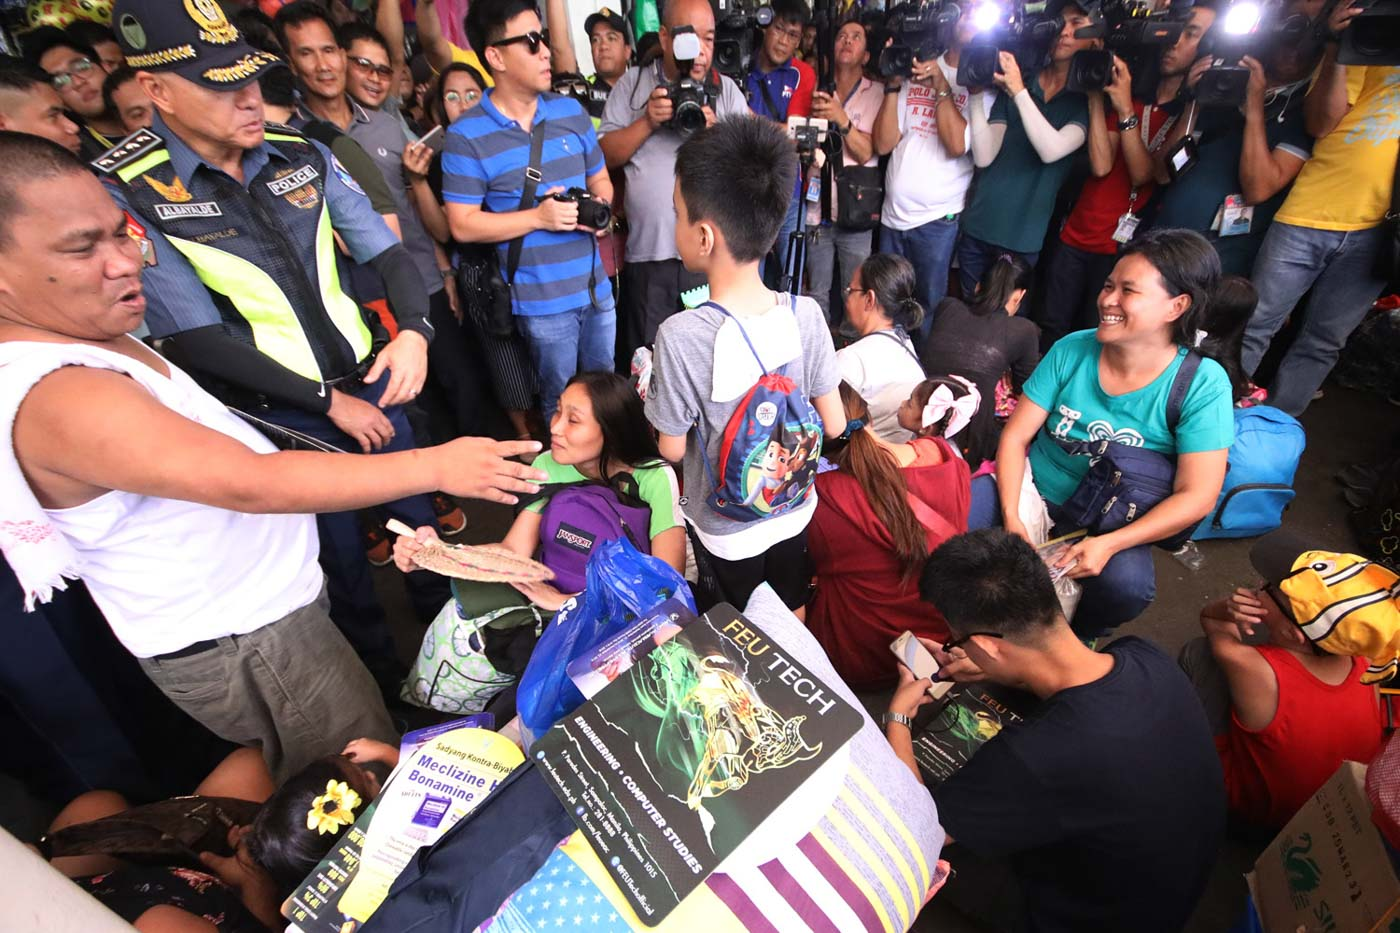 INTERACTION. Albayalde chats with passengers waiting for their bus ride. Photo by Darren Langit/Rappler